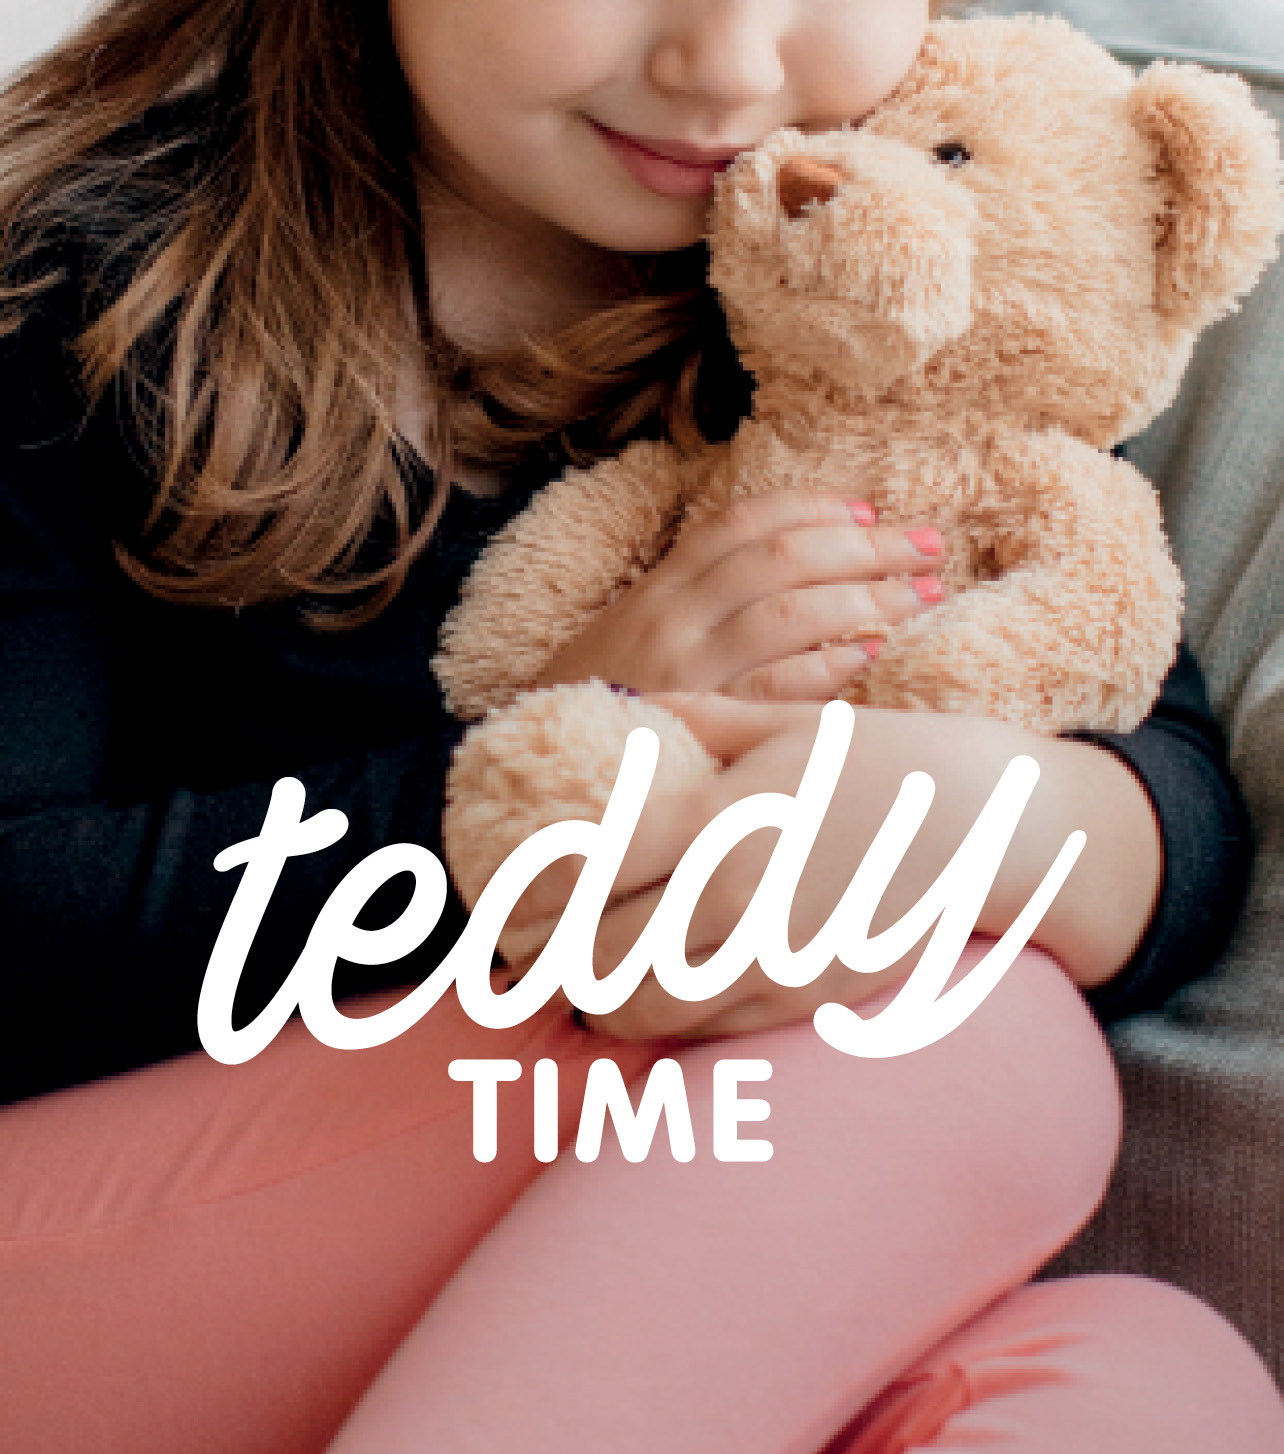 CH4814_Allenstown_SHE Teddy Activation_Web tiles_642x727px